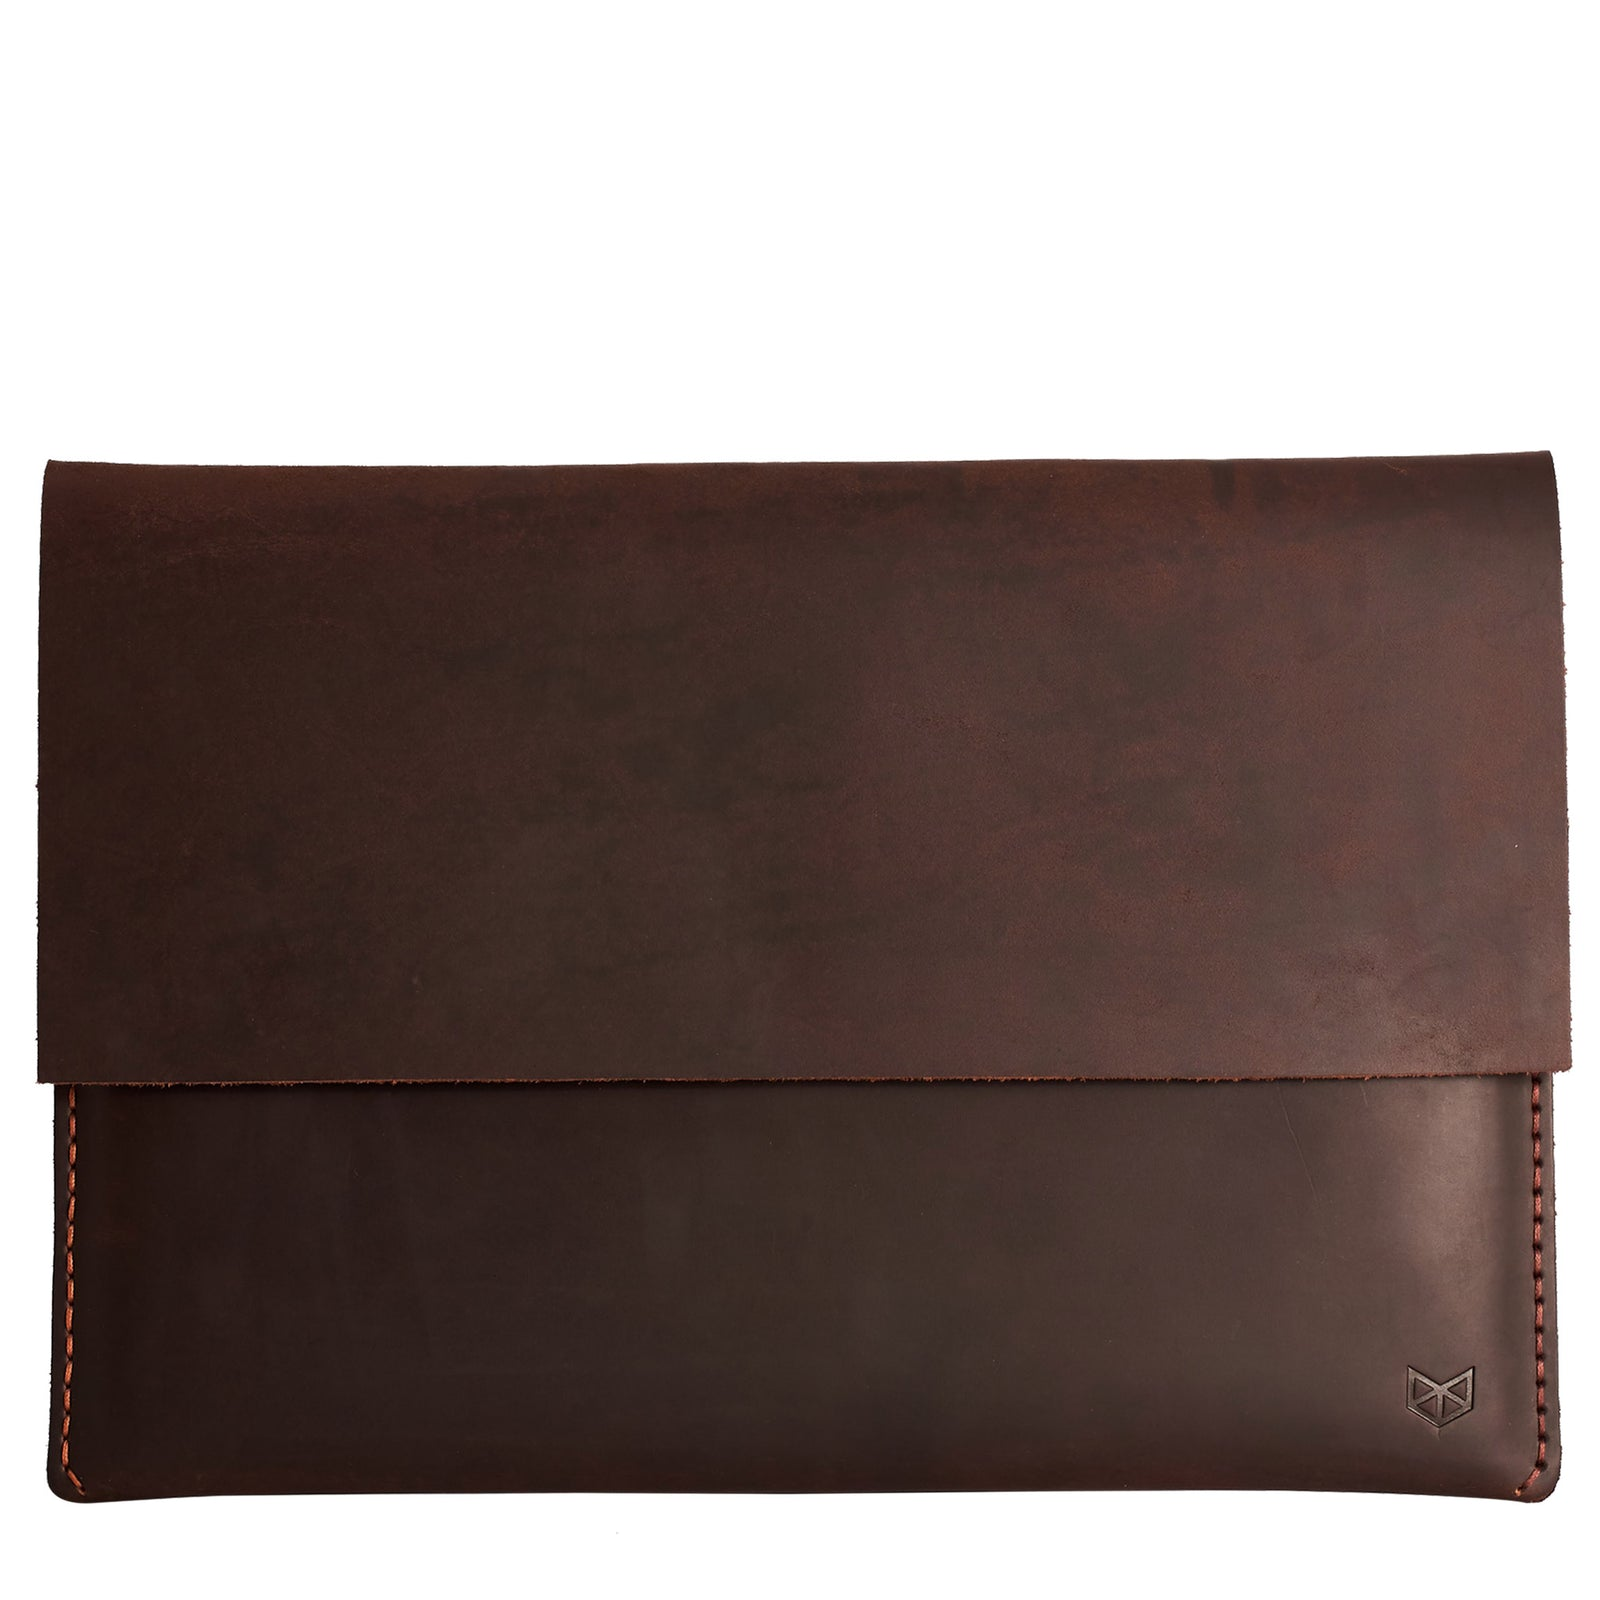 ASUS 15 Inch Handmade Leather Laptop Sleeve Case with document holder pocket for MacBook 13 Inch HP Lenovo 14 Inch 12 Inch DELL